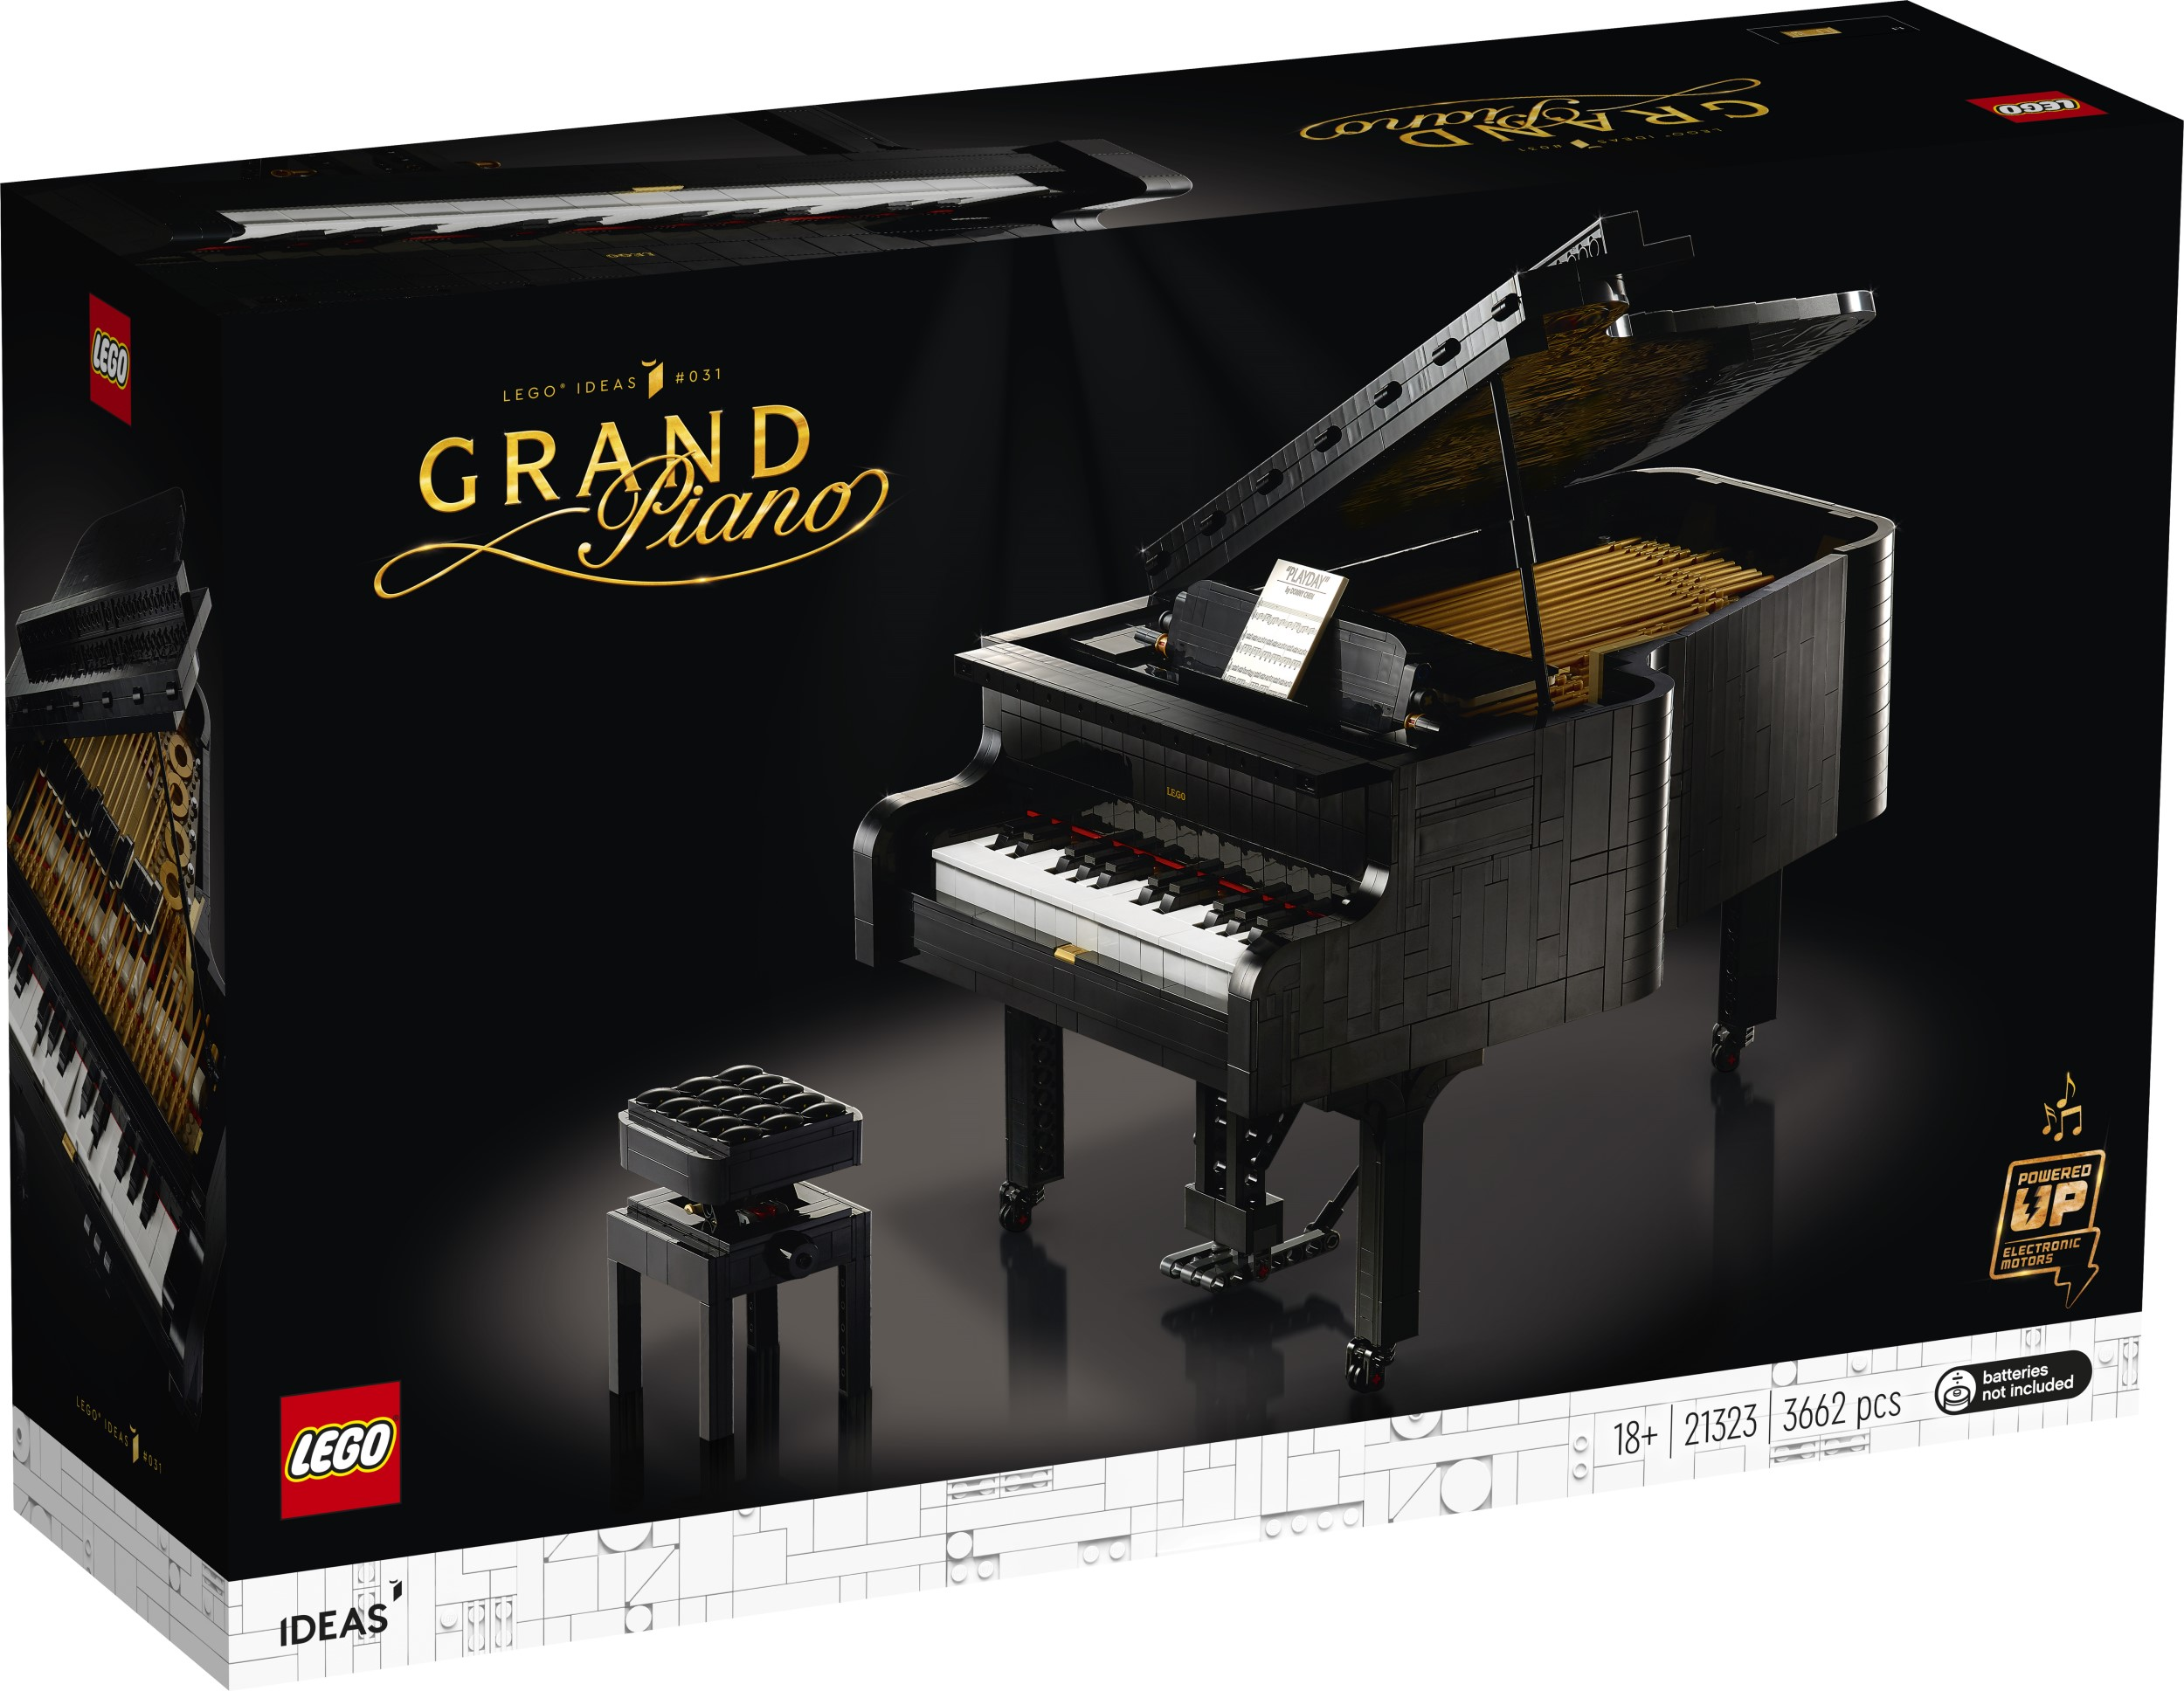 LEGO Ideas Grand Piano set lets you play music for real 17